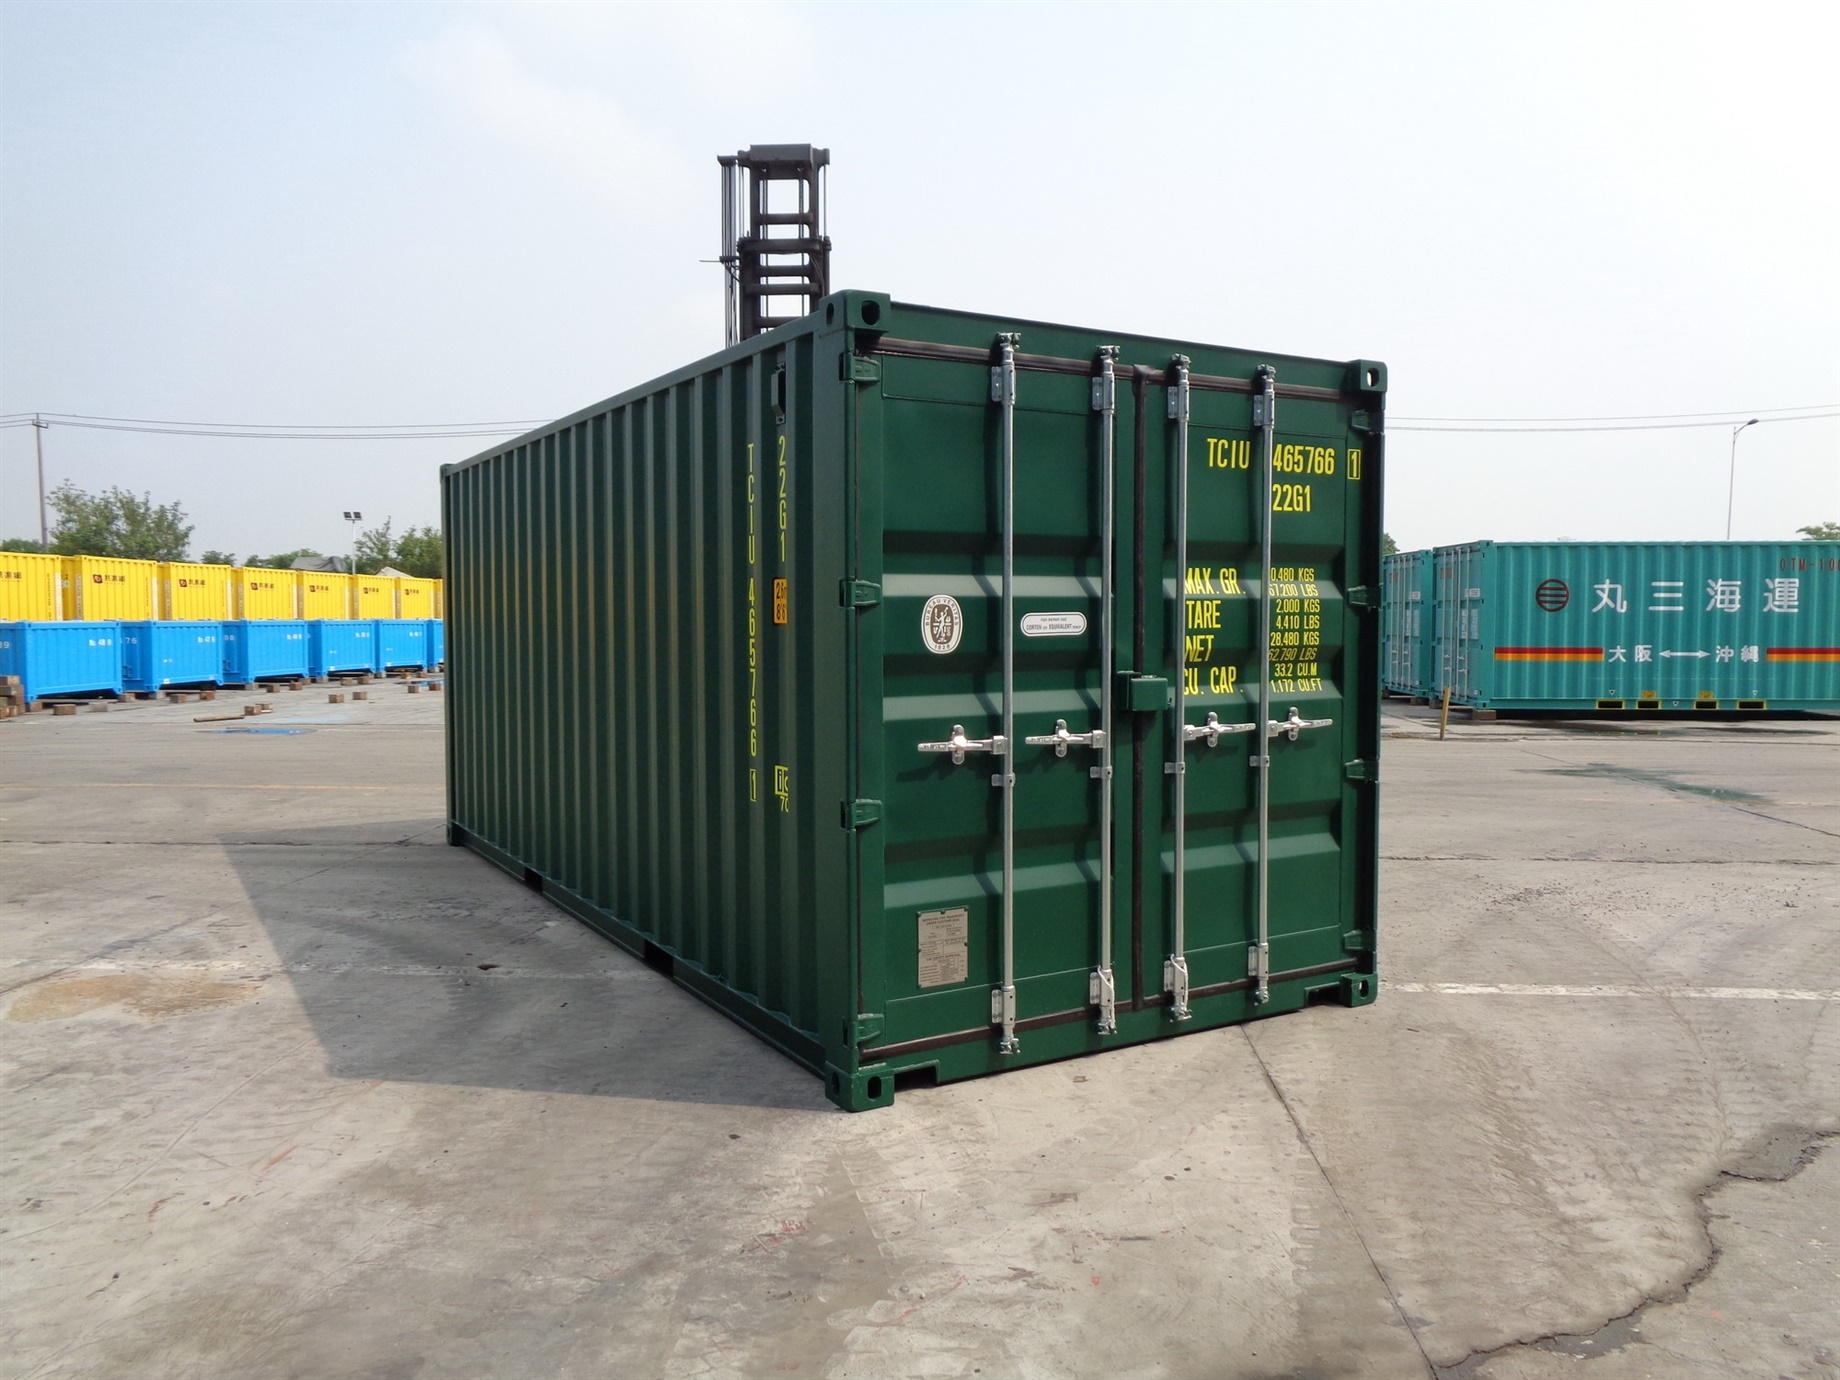 20 foot High Cube green storage container titan containers